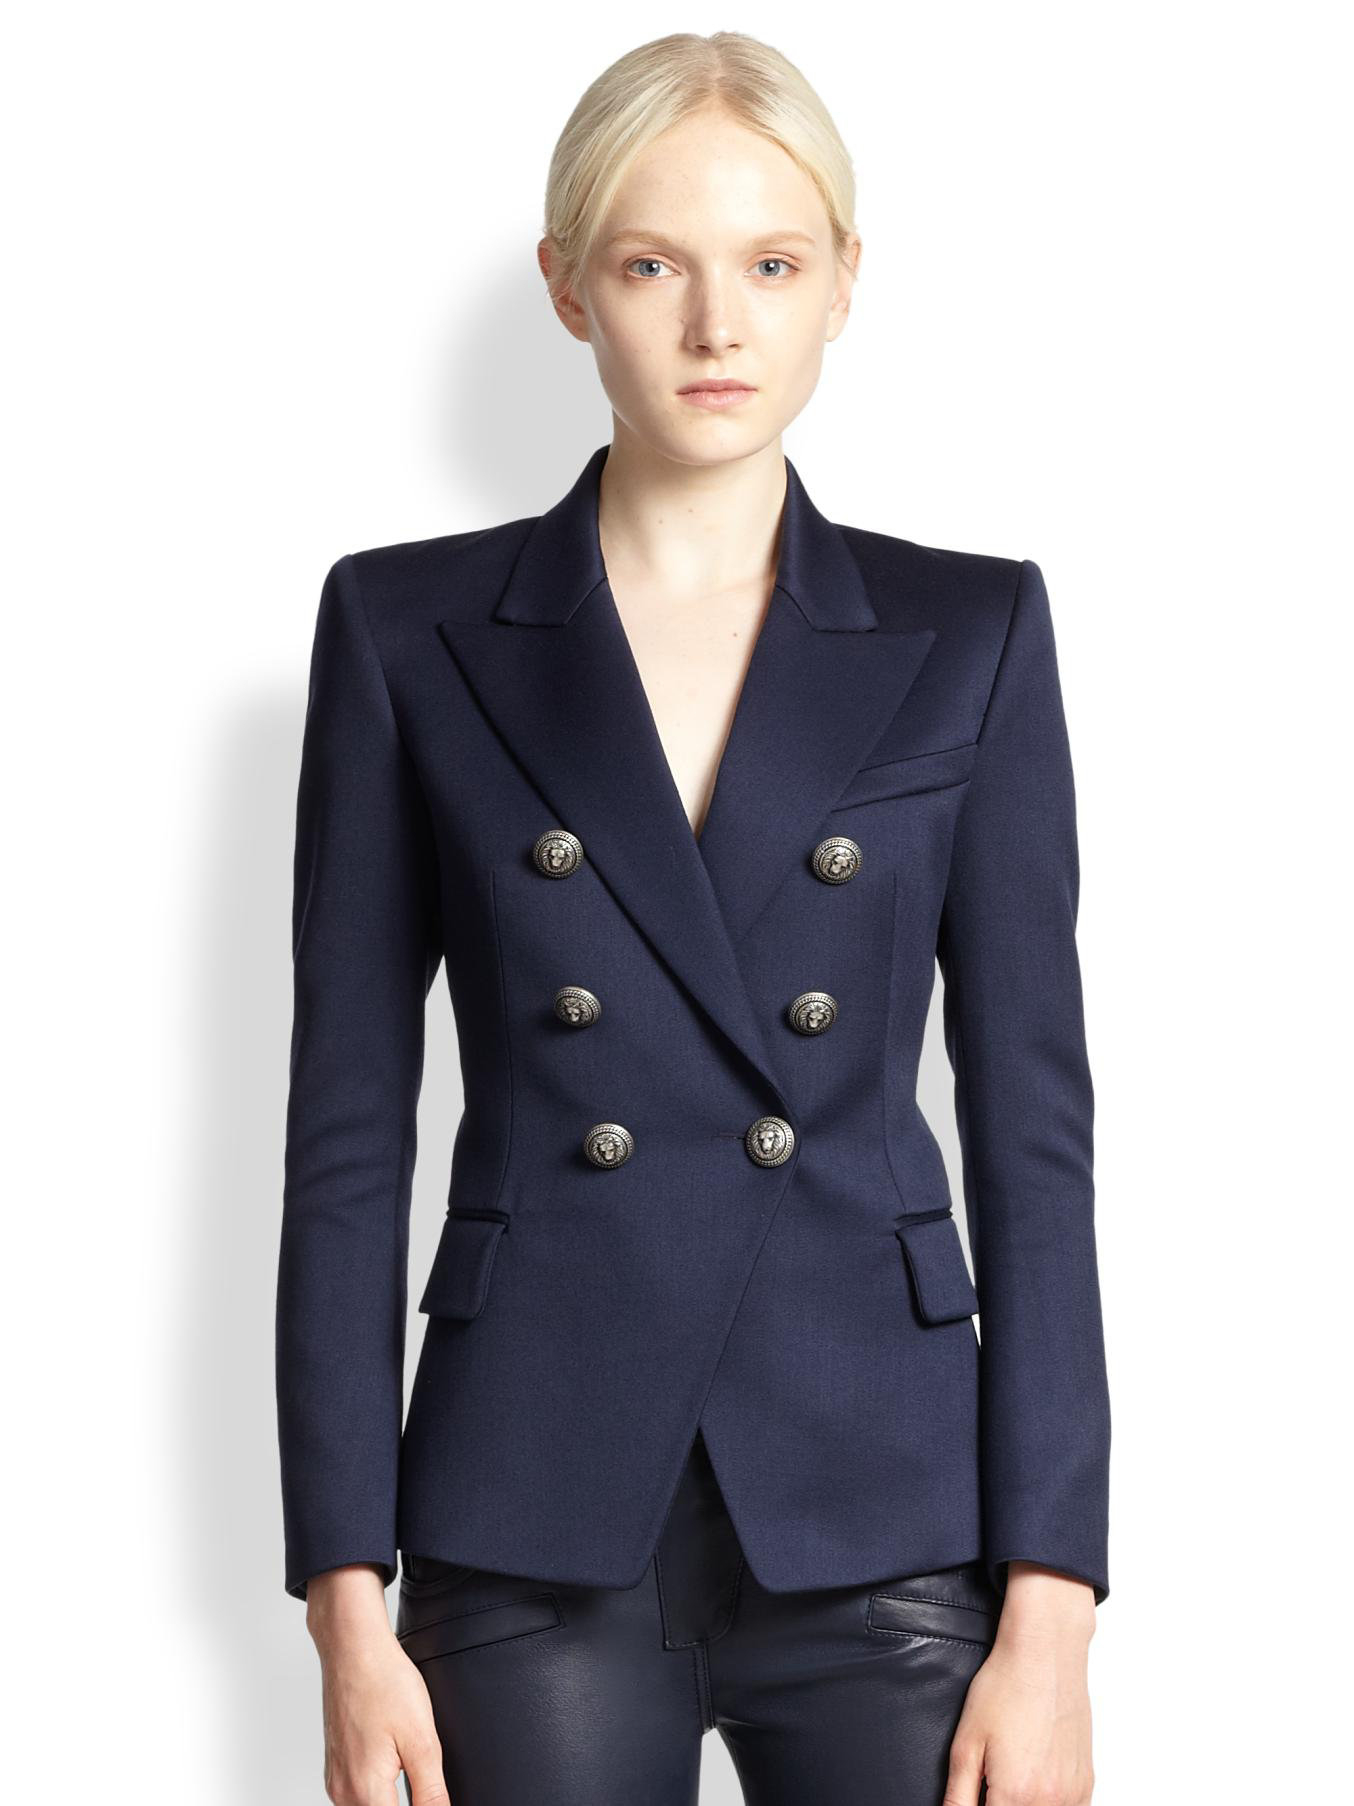 Balmain Winter Jacket | Balmain Navy Blazer | Balmain Double Breasted Blazer